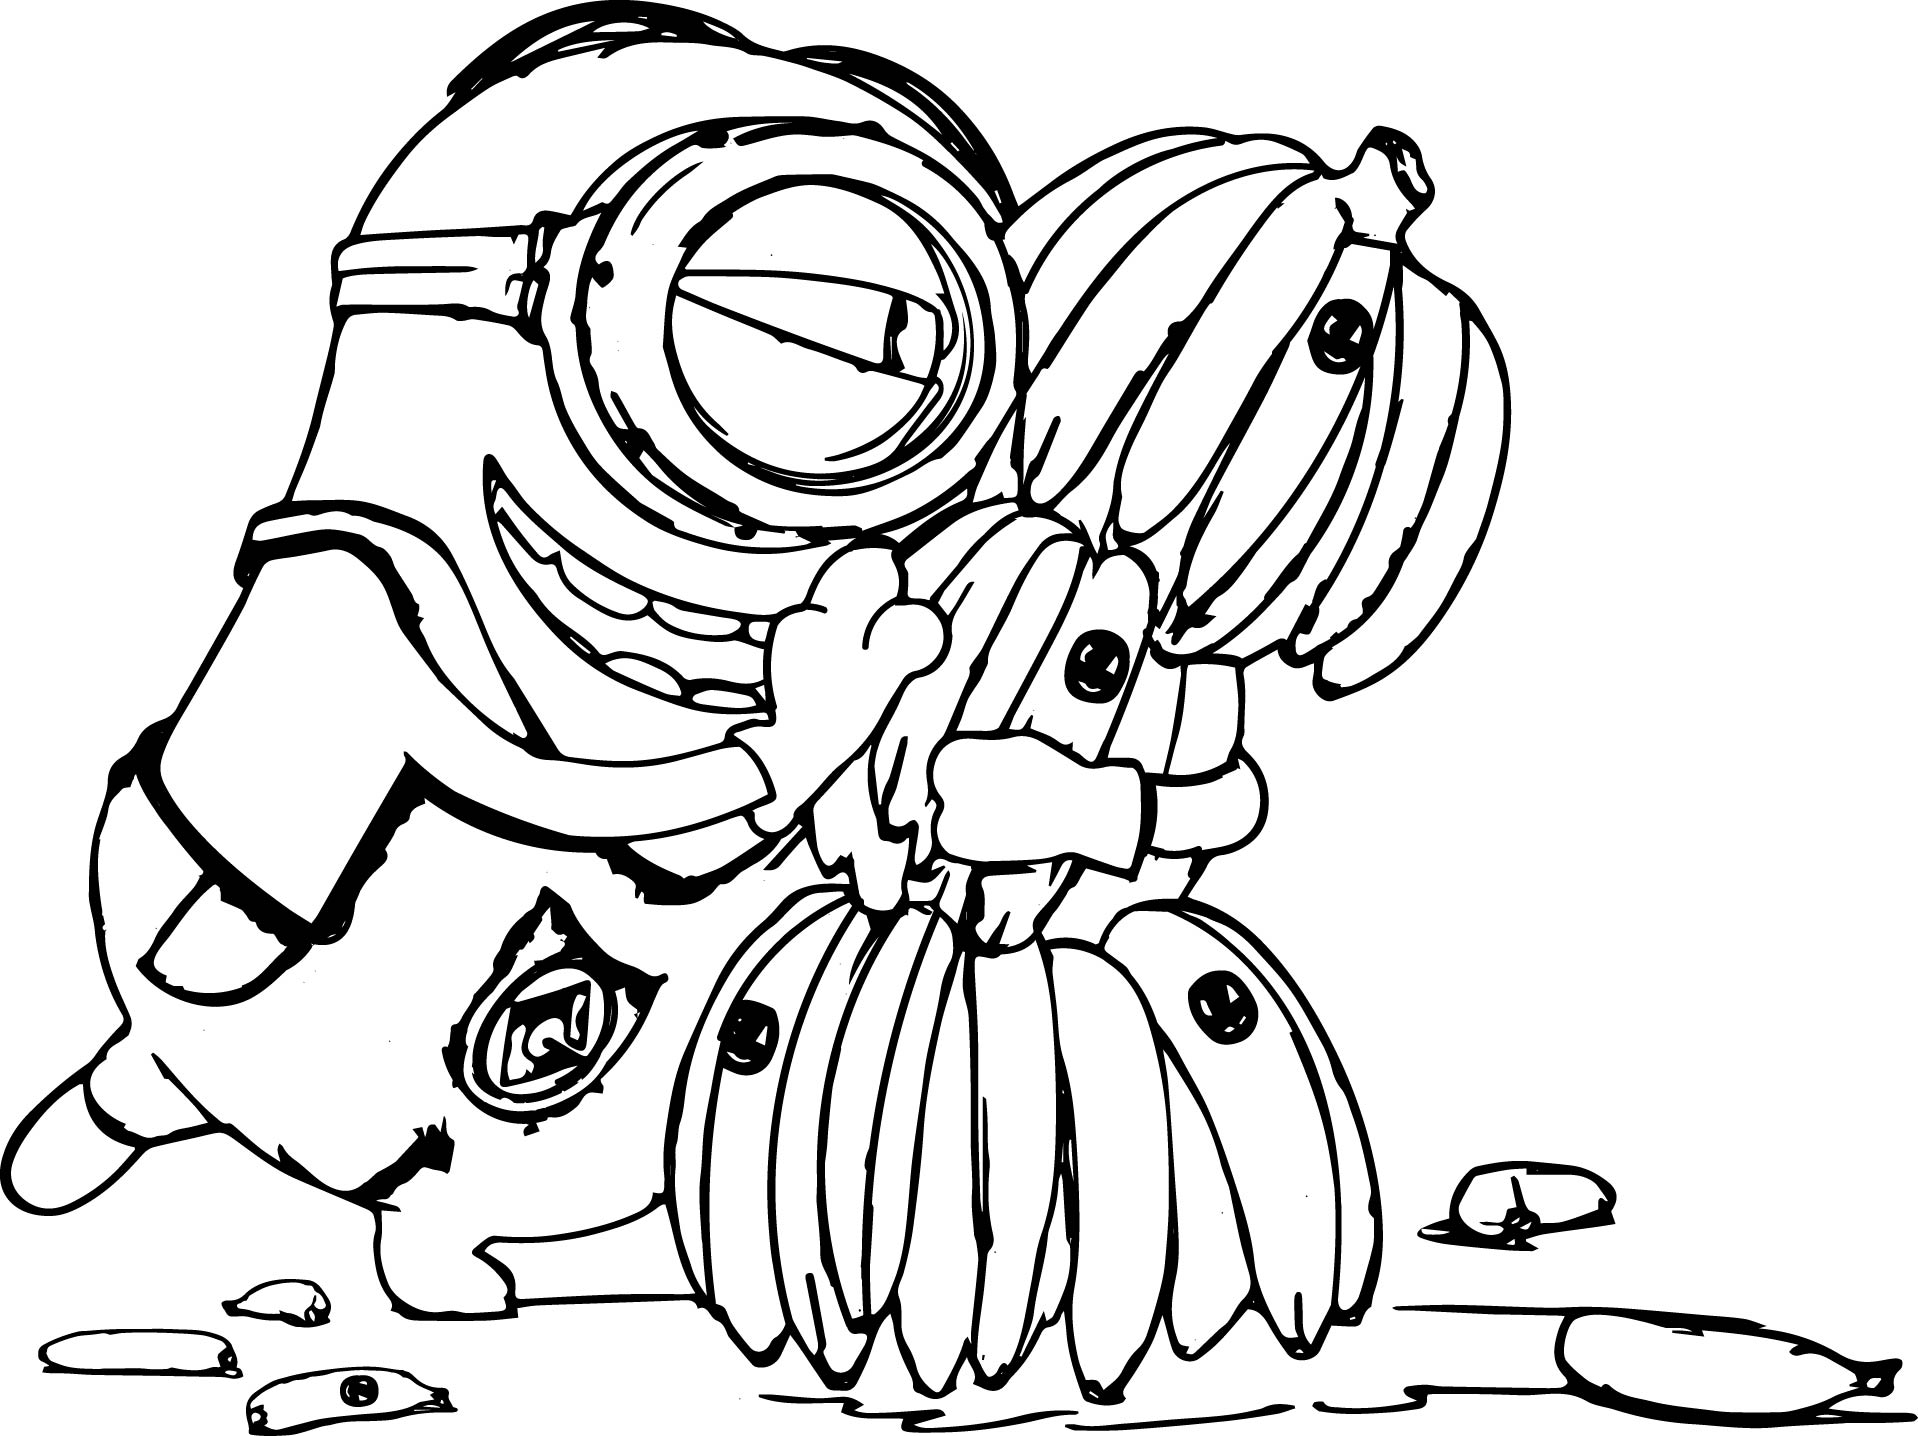 Steward Little Coloring Pages mr peabody and sherman images coloring ...